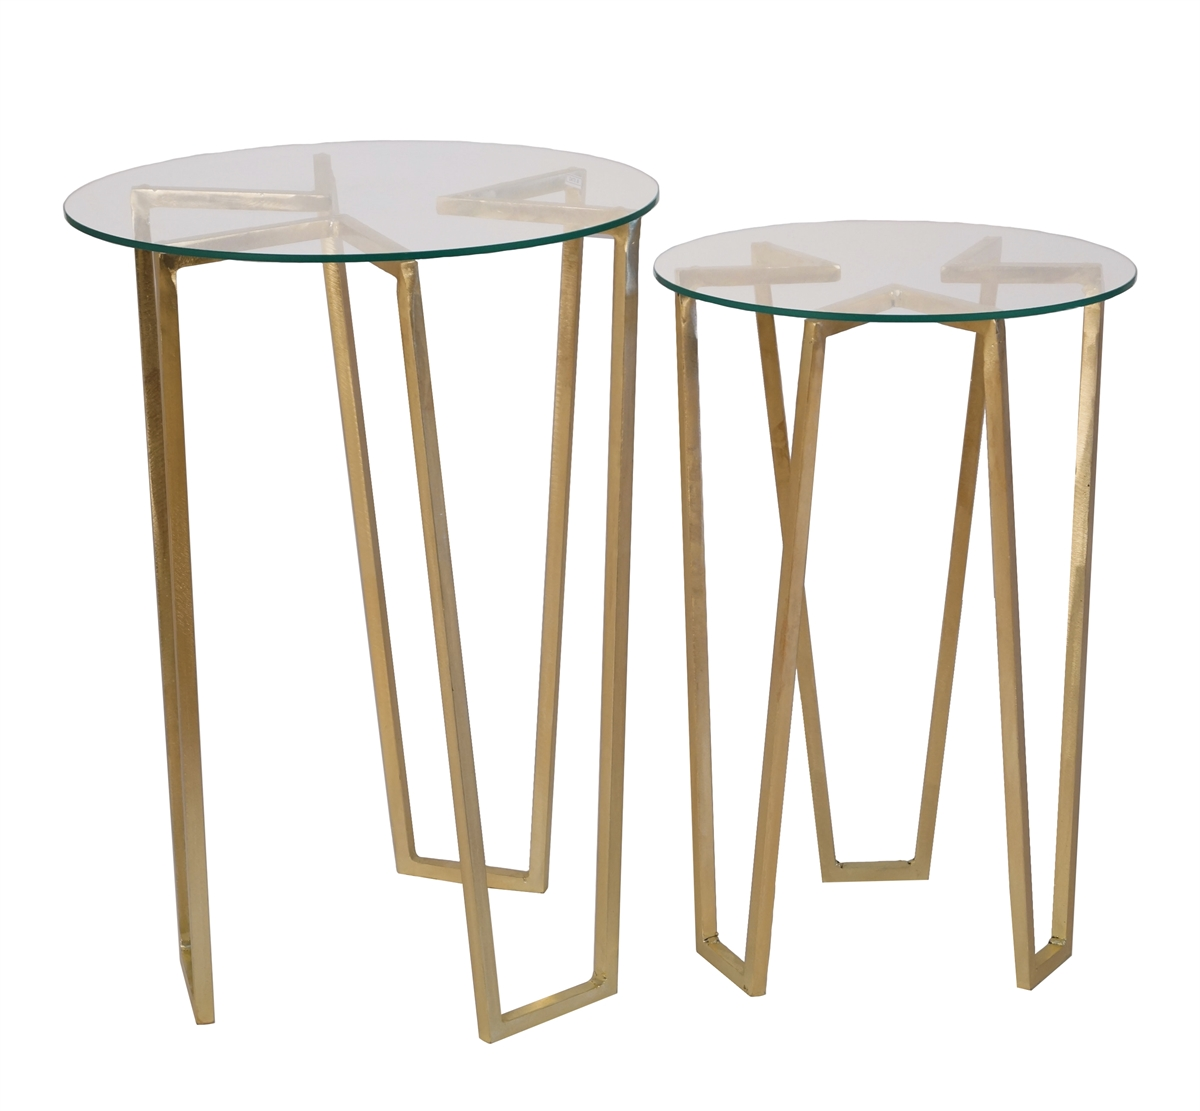 gold tripod accent tables glass top sagebrook home table with round sofa side drawer white canvas umbrella tall end seater and chairs trestle dining modern furniture houston